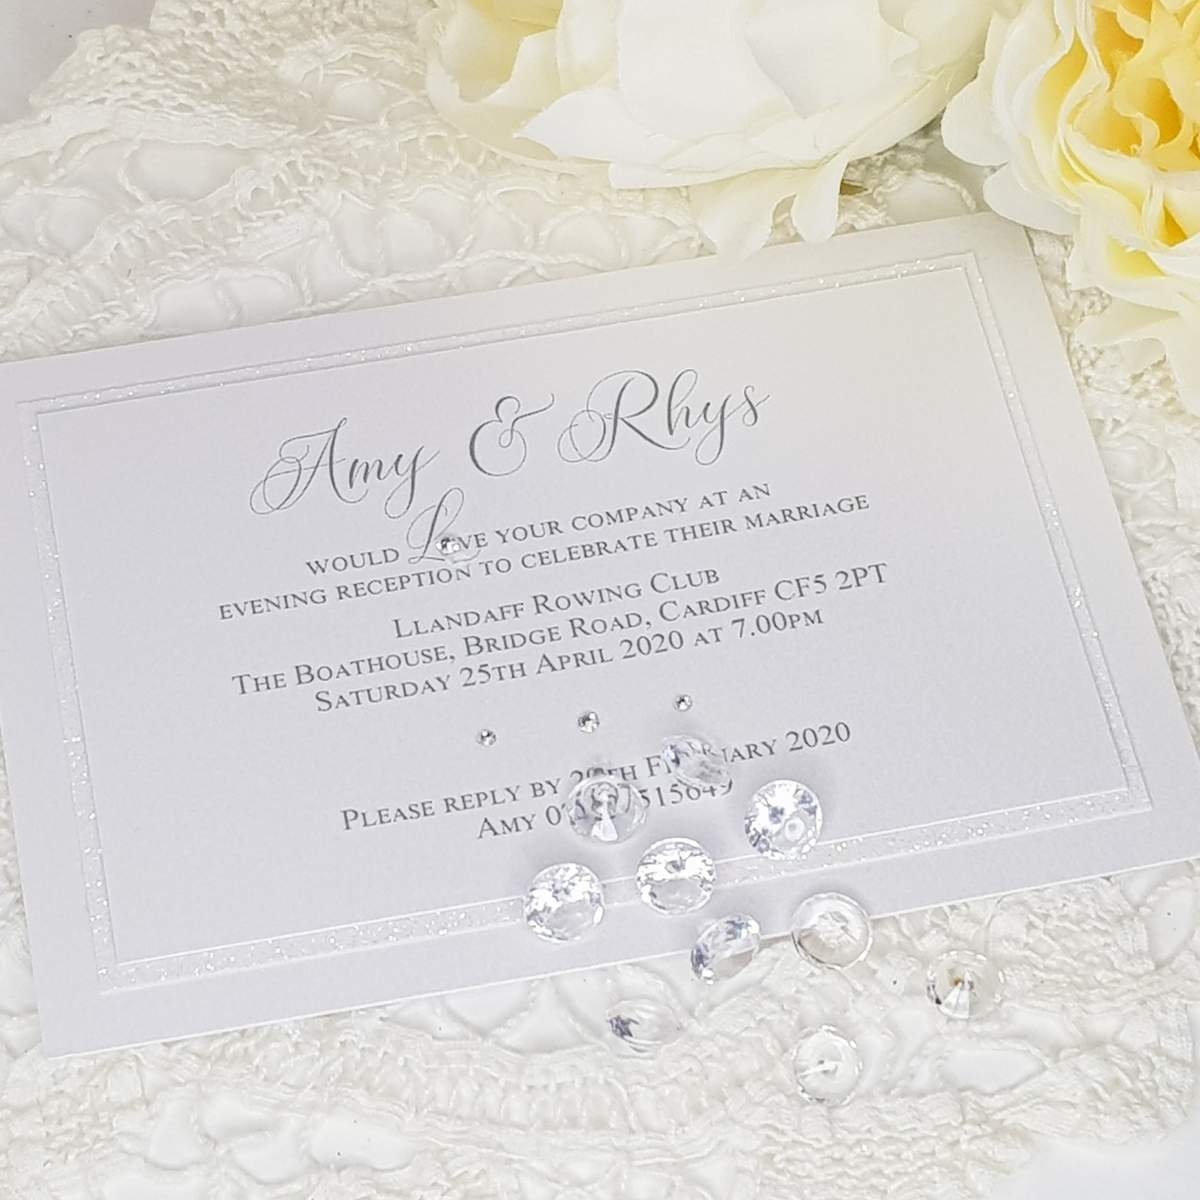 Chic white evening invitation with glitter and crystal accents